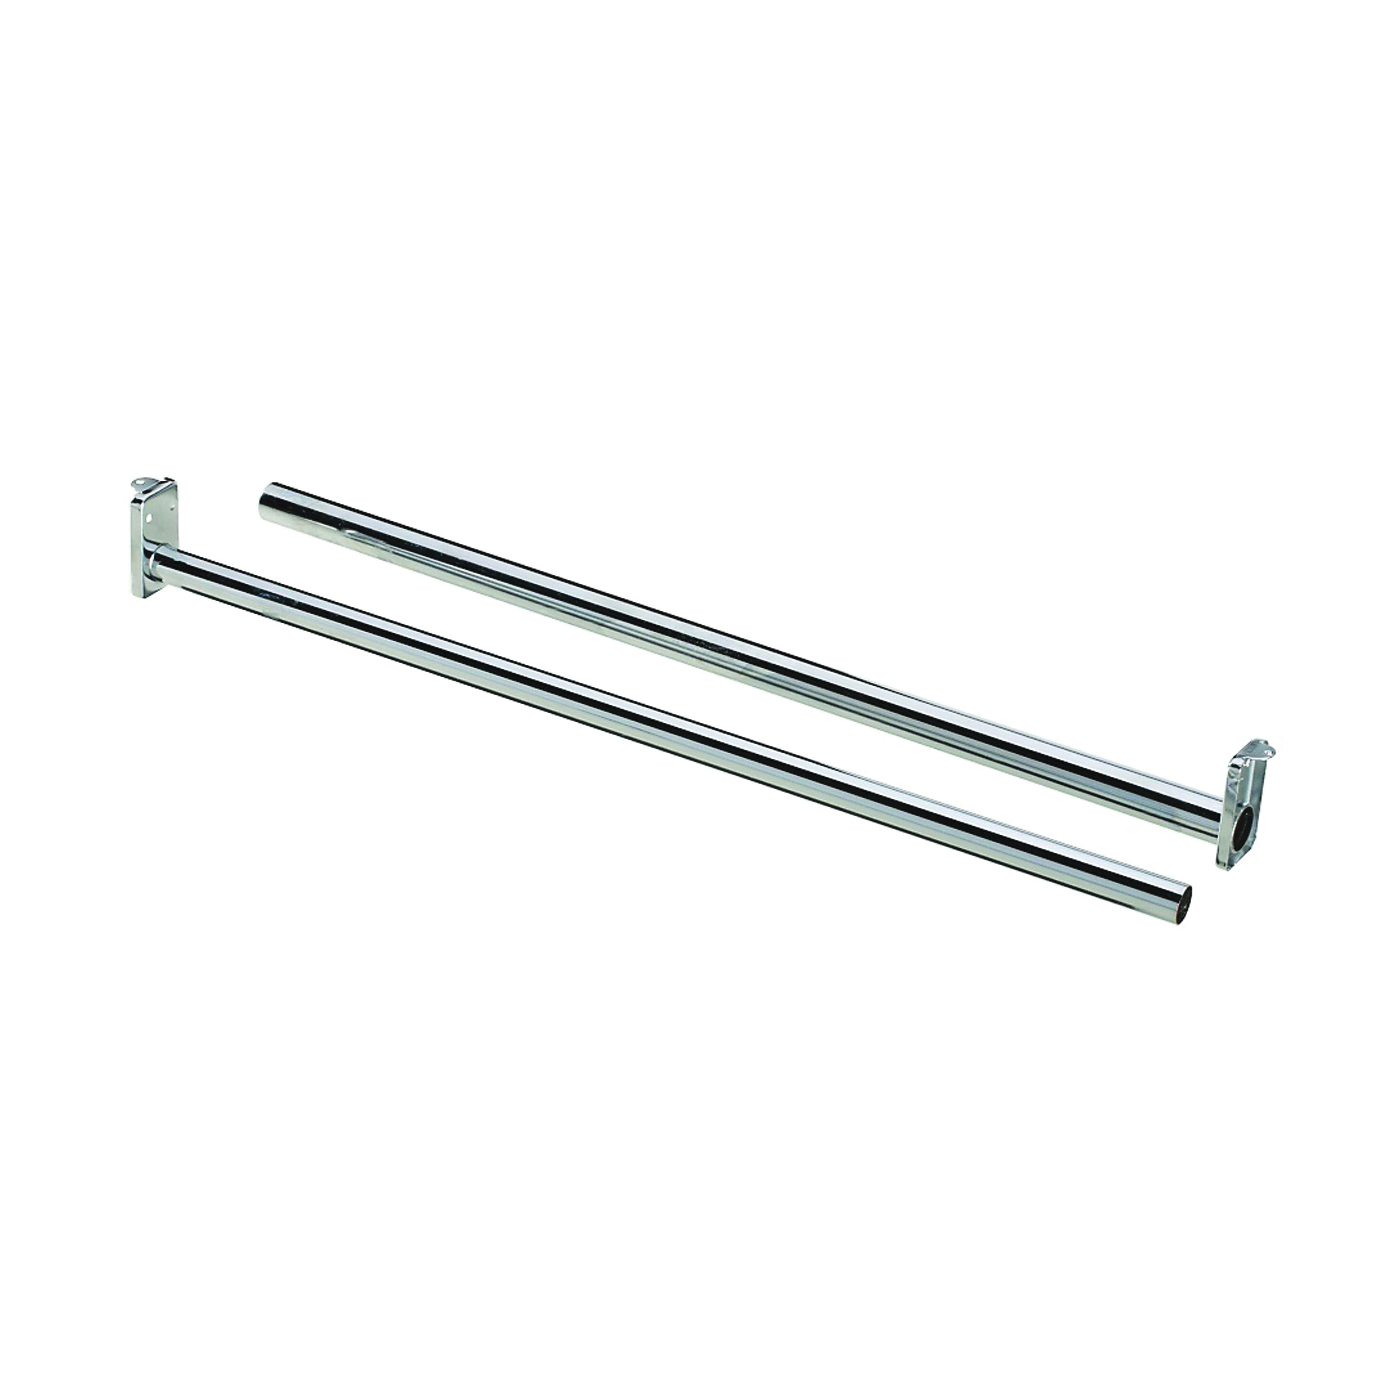 Picture of National Hardware DPV209 Series N338319 Closet Rod, 30 to 48 in L, Steel, Bright